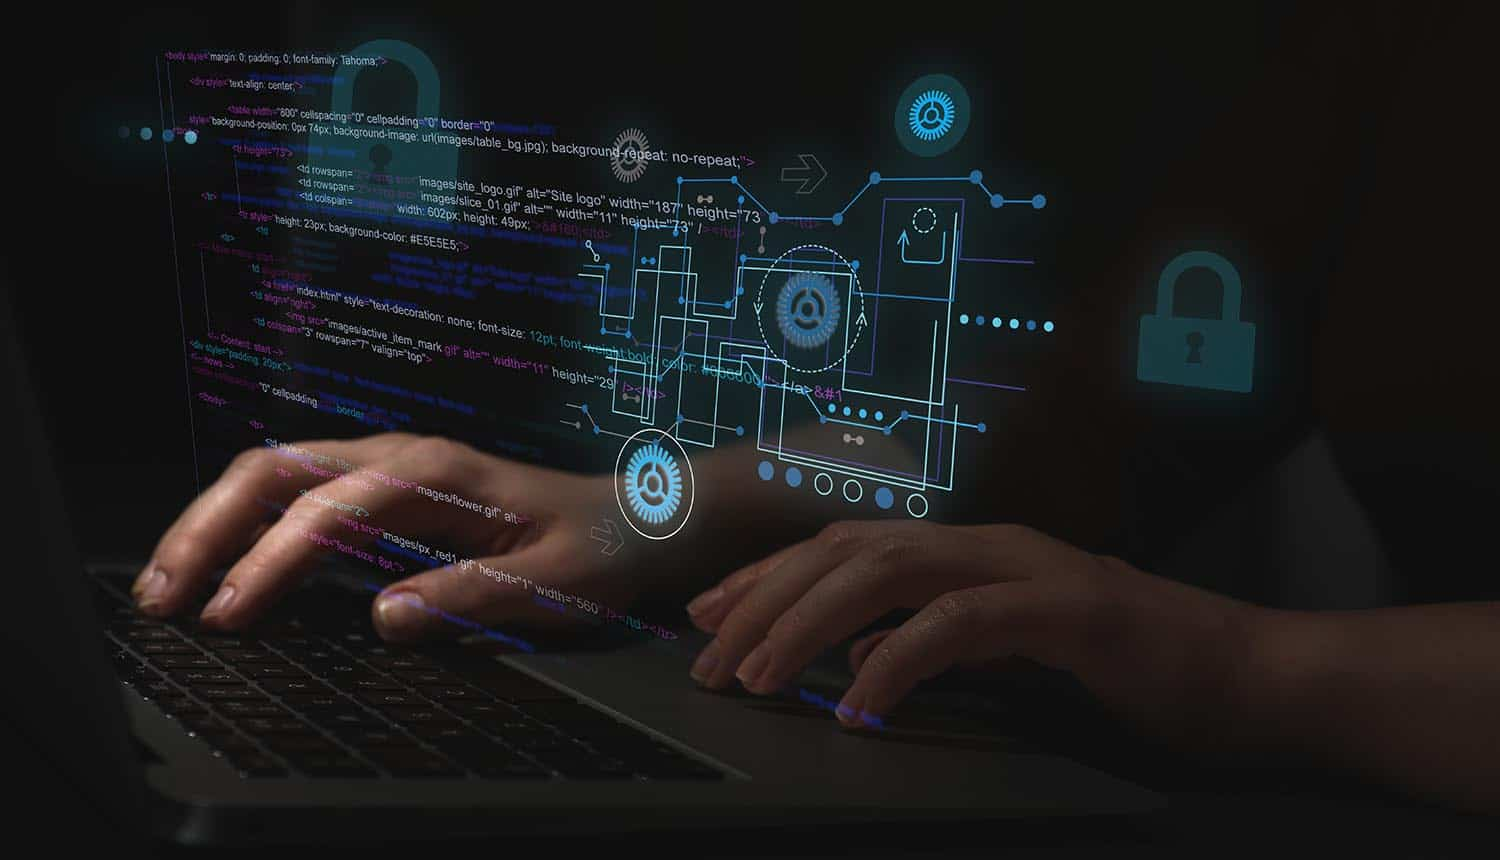 Hacker working with laptop at table showing cyber attack on water supply